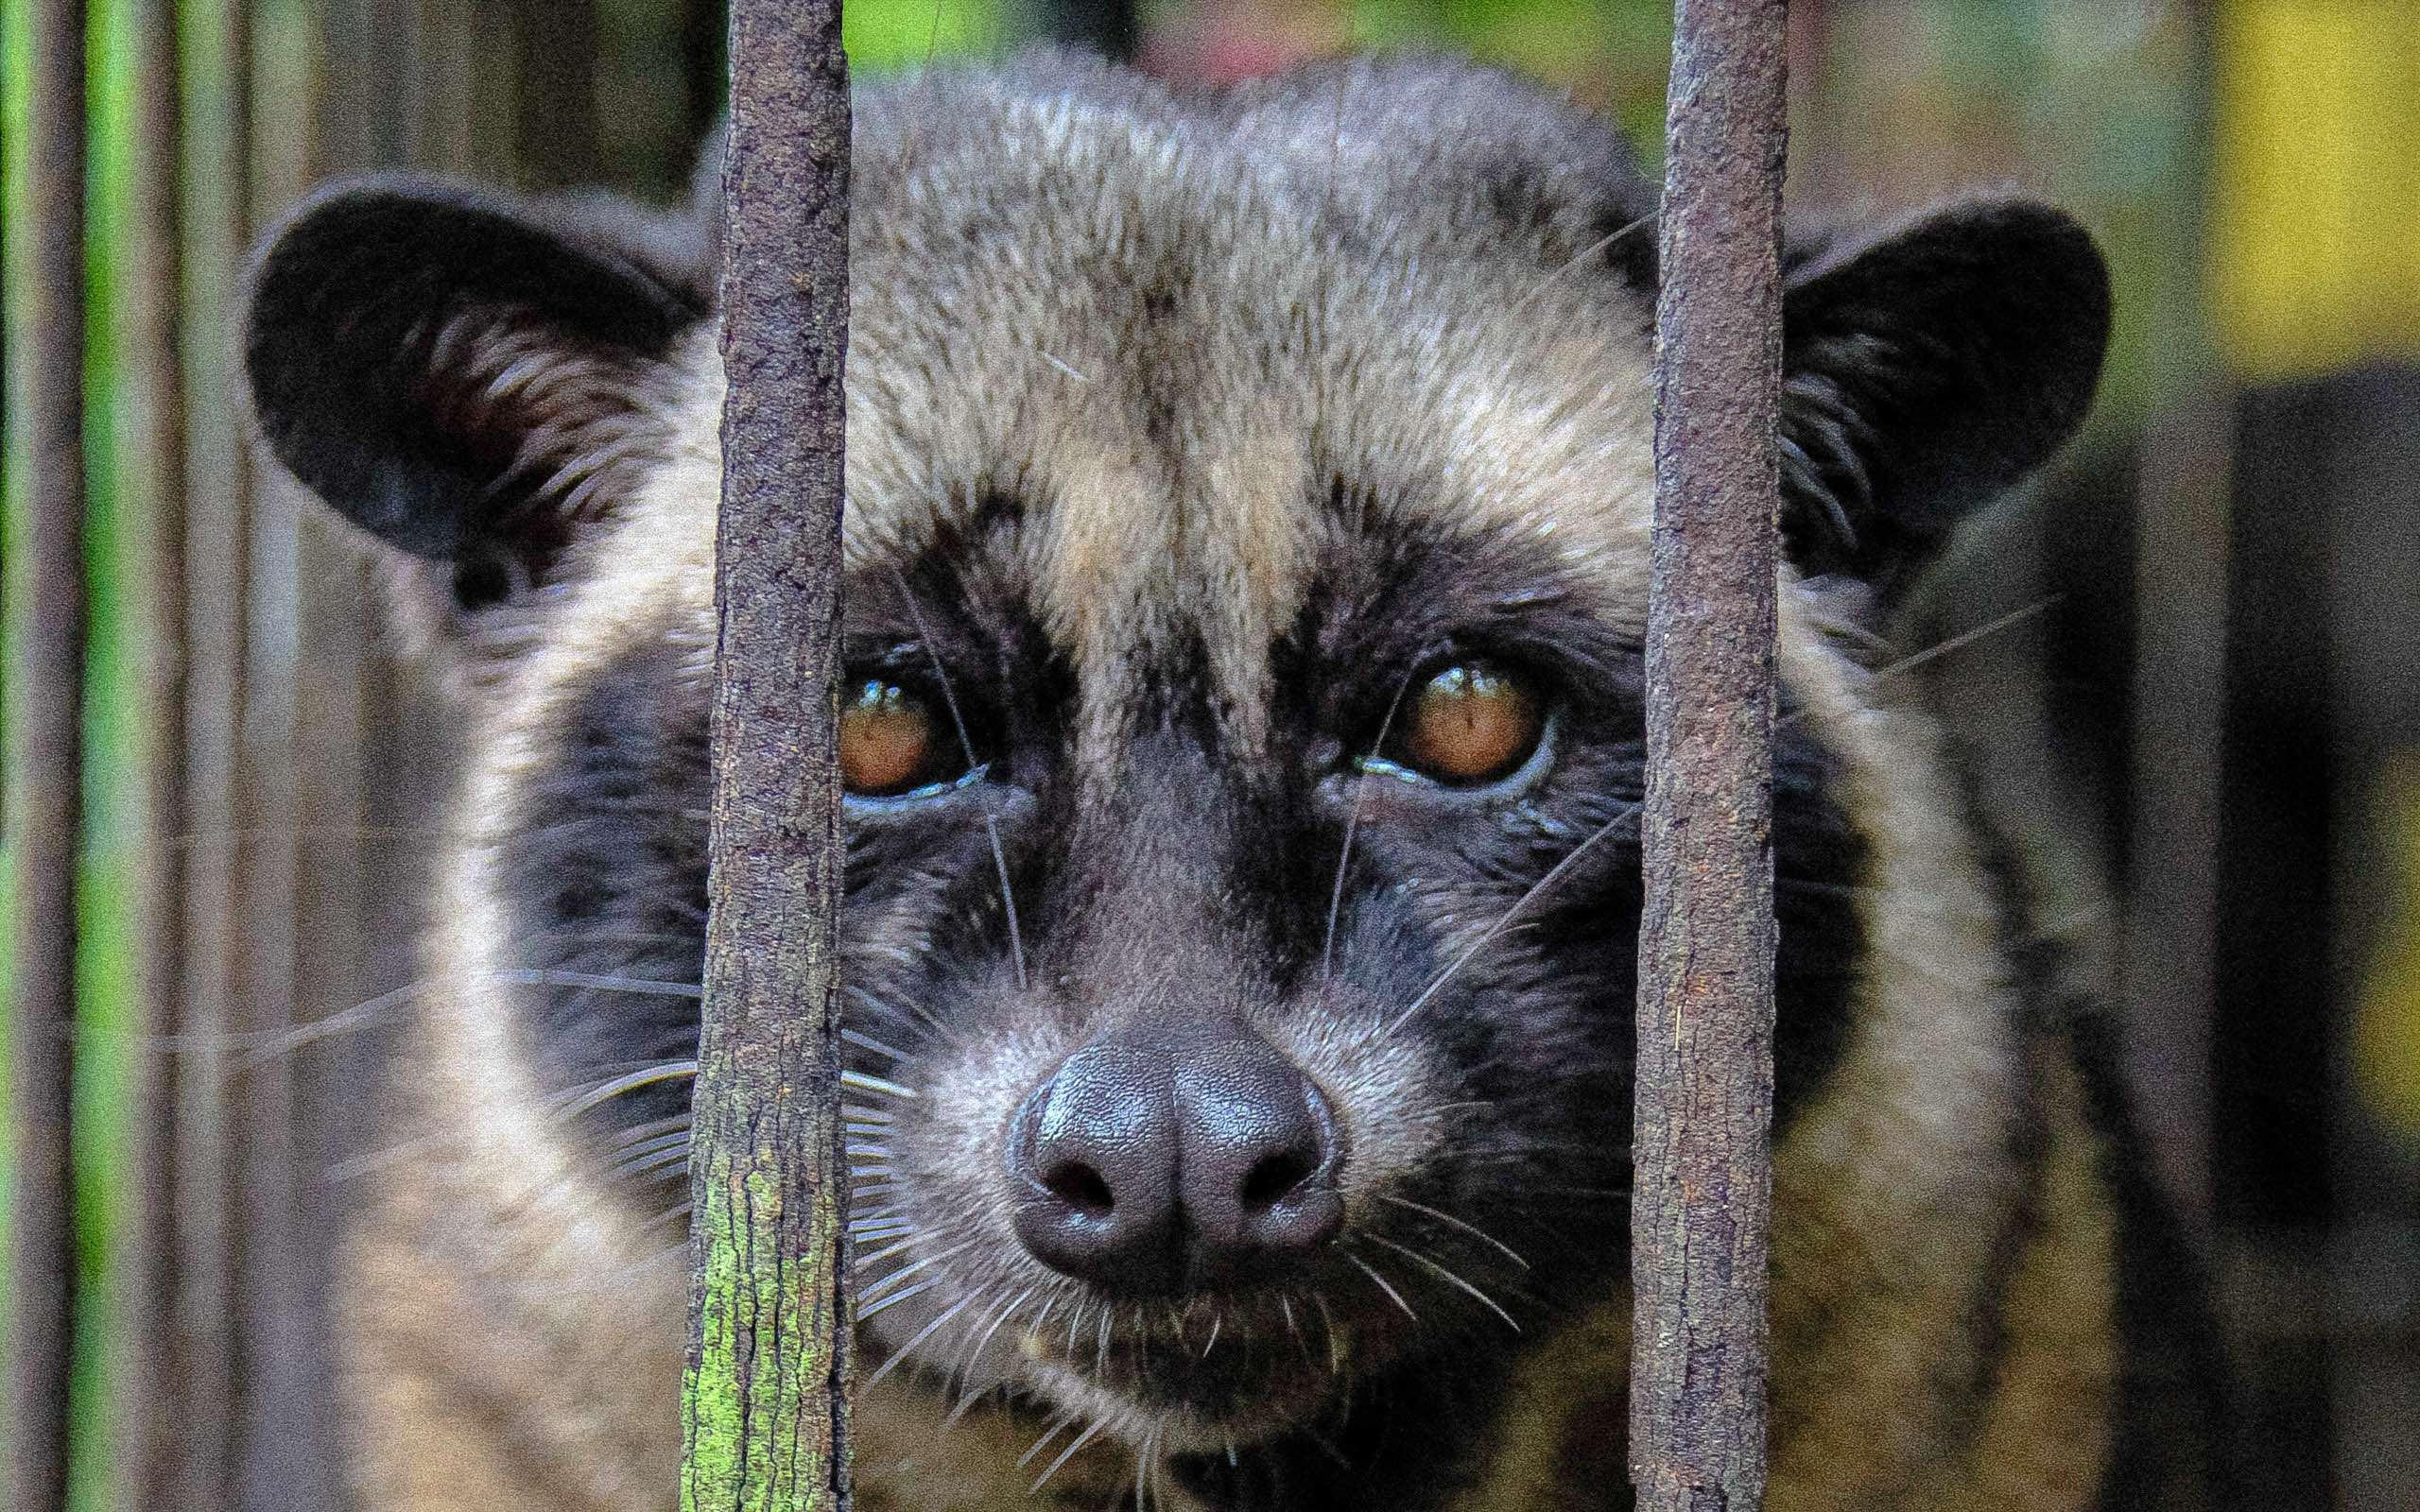 "Civets are slender bodied small mammals that are highly active nocturnal tree dwellers that cannot adapt to these captive conditions. Photo by Neil D""Cruze/World Animal Protection."